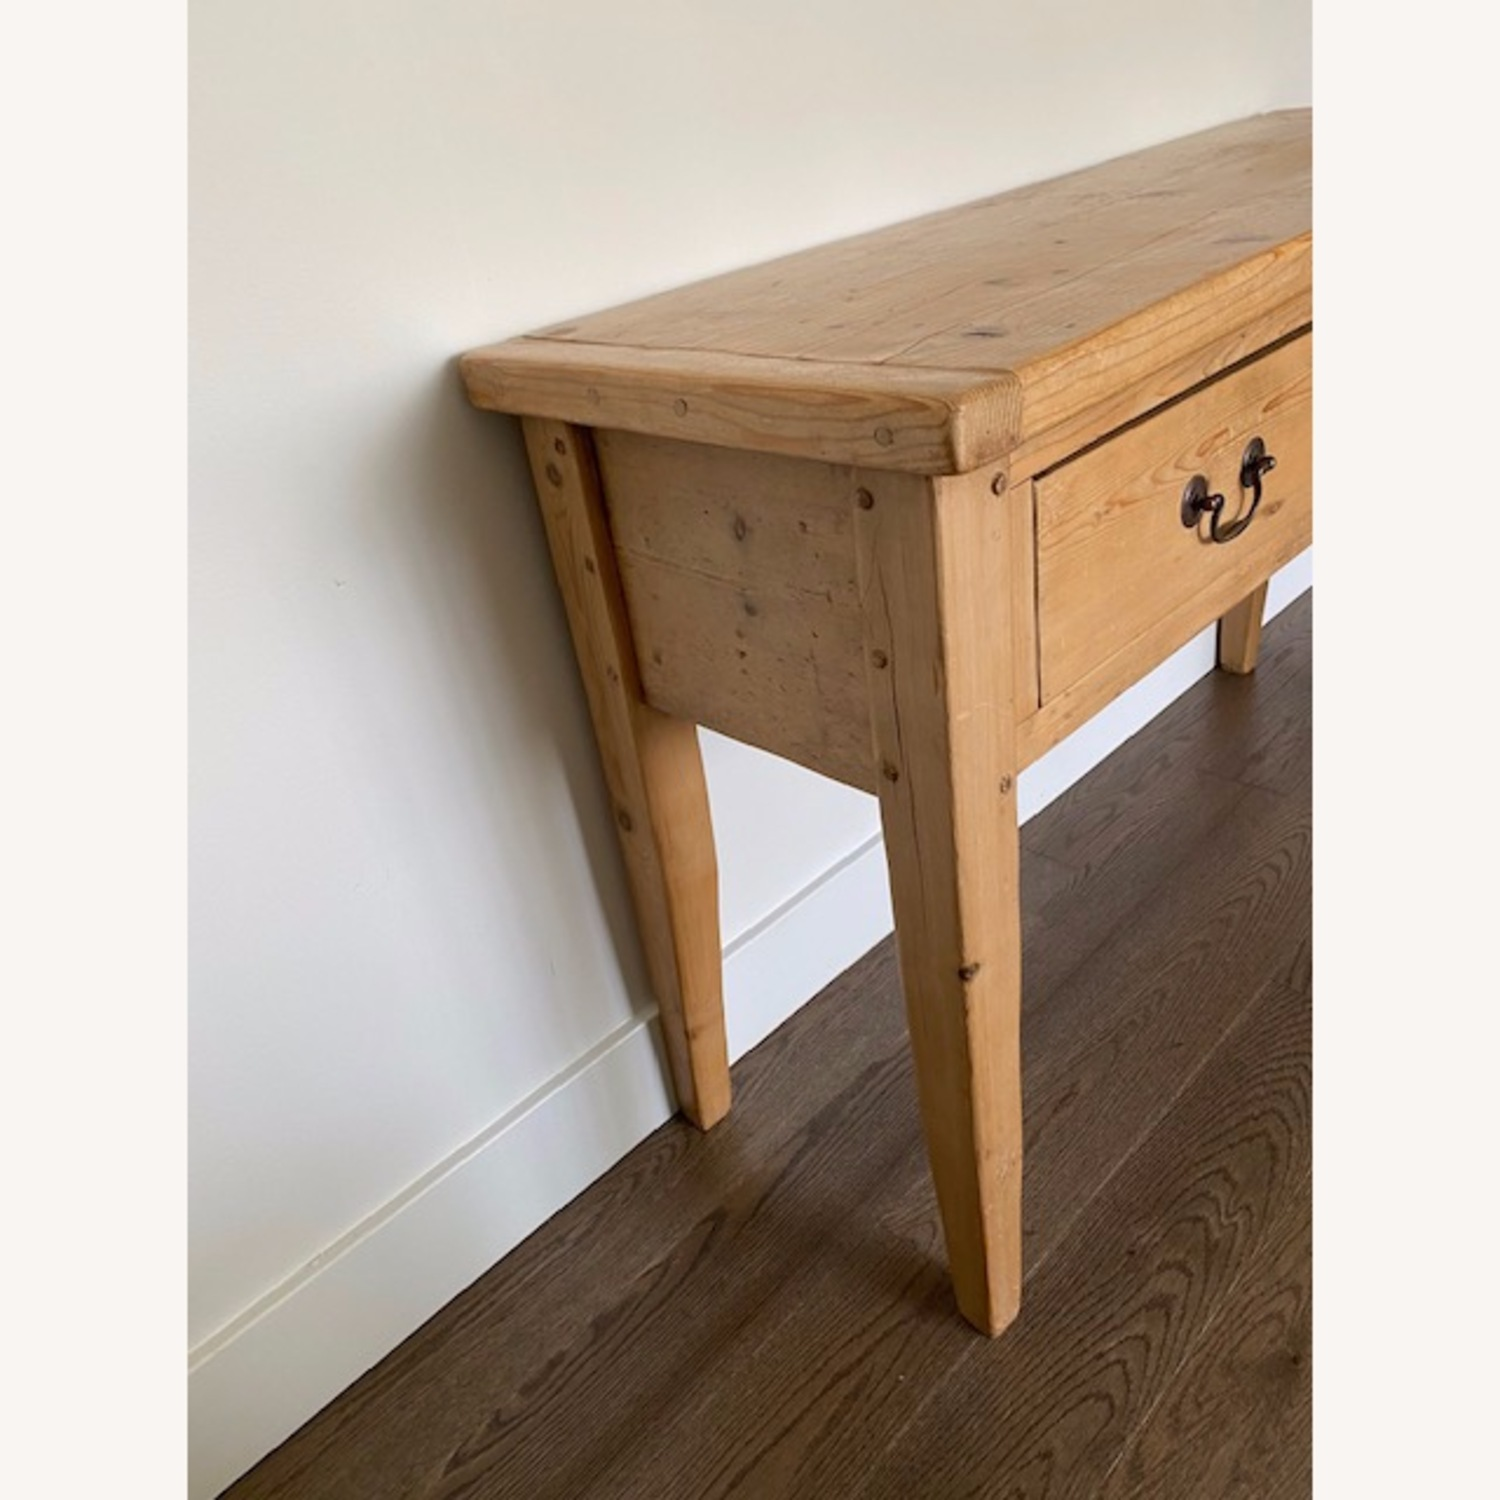 Vintage Pine Console Table with Drawers - image-3